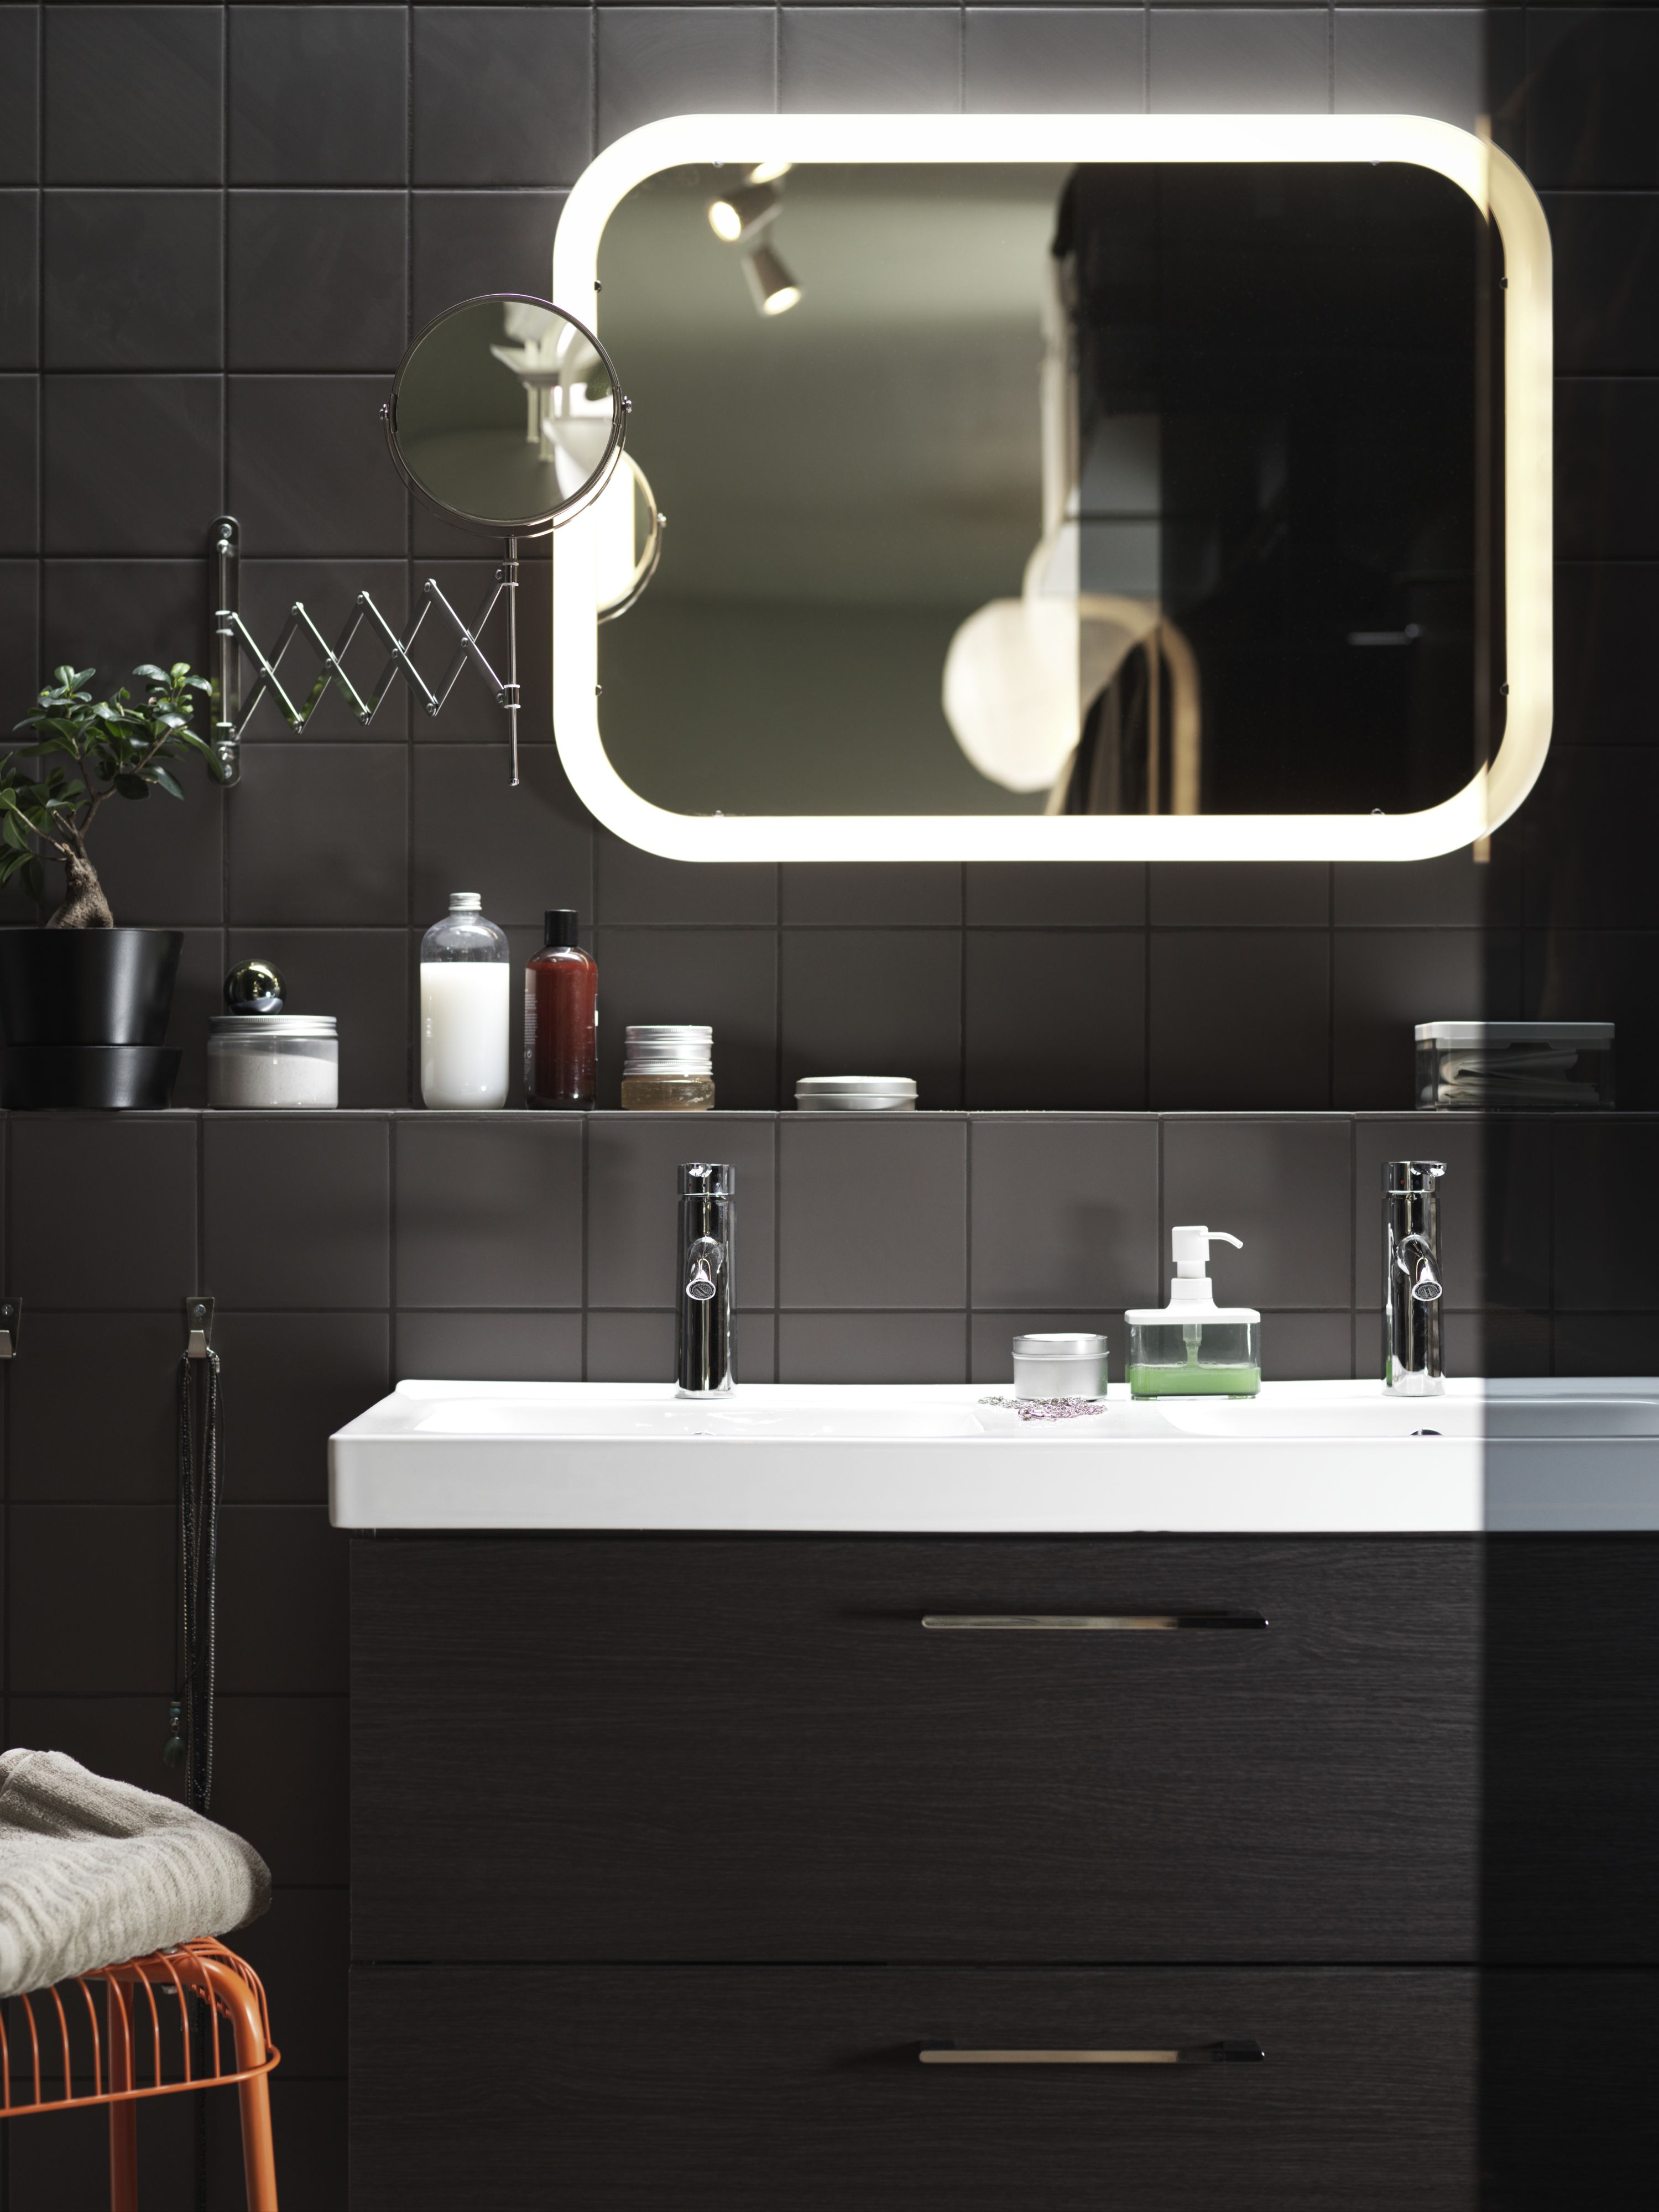 The Storjorm Mirror With Built In Light Gives You Perfect Glow All Year Long